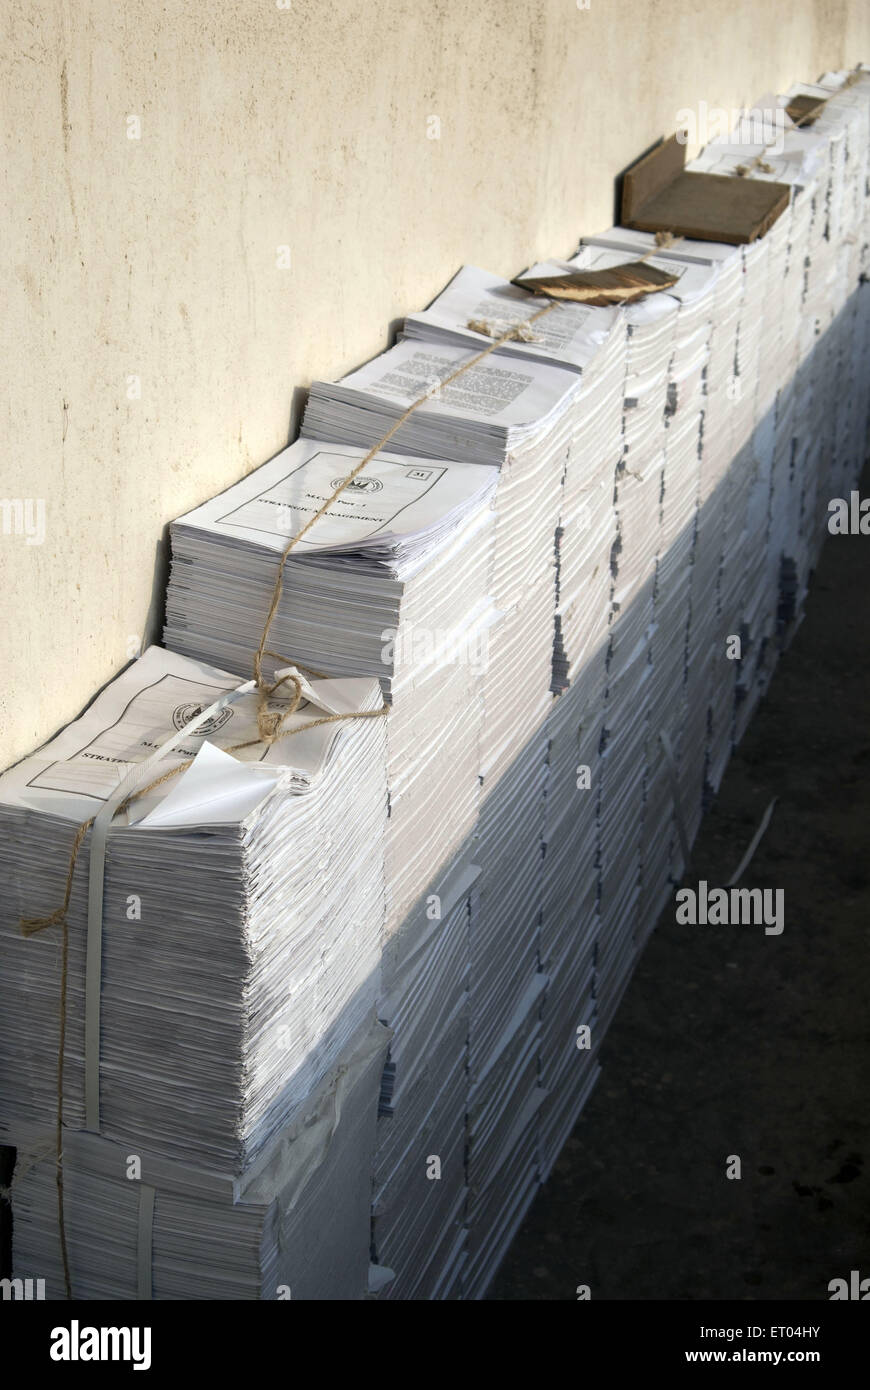 Printed material stacked in balocny of industrial estate Mumbai India - Stock Image